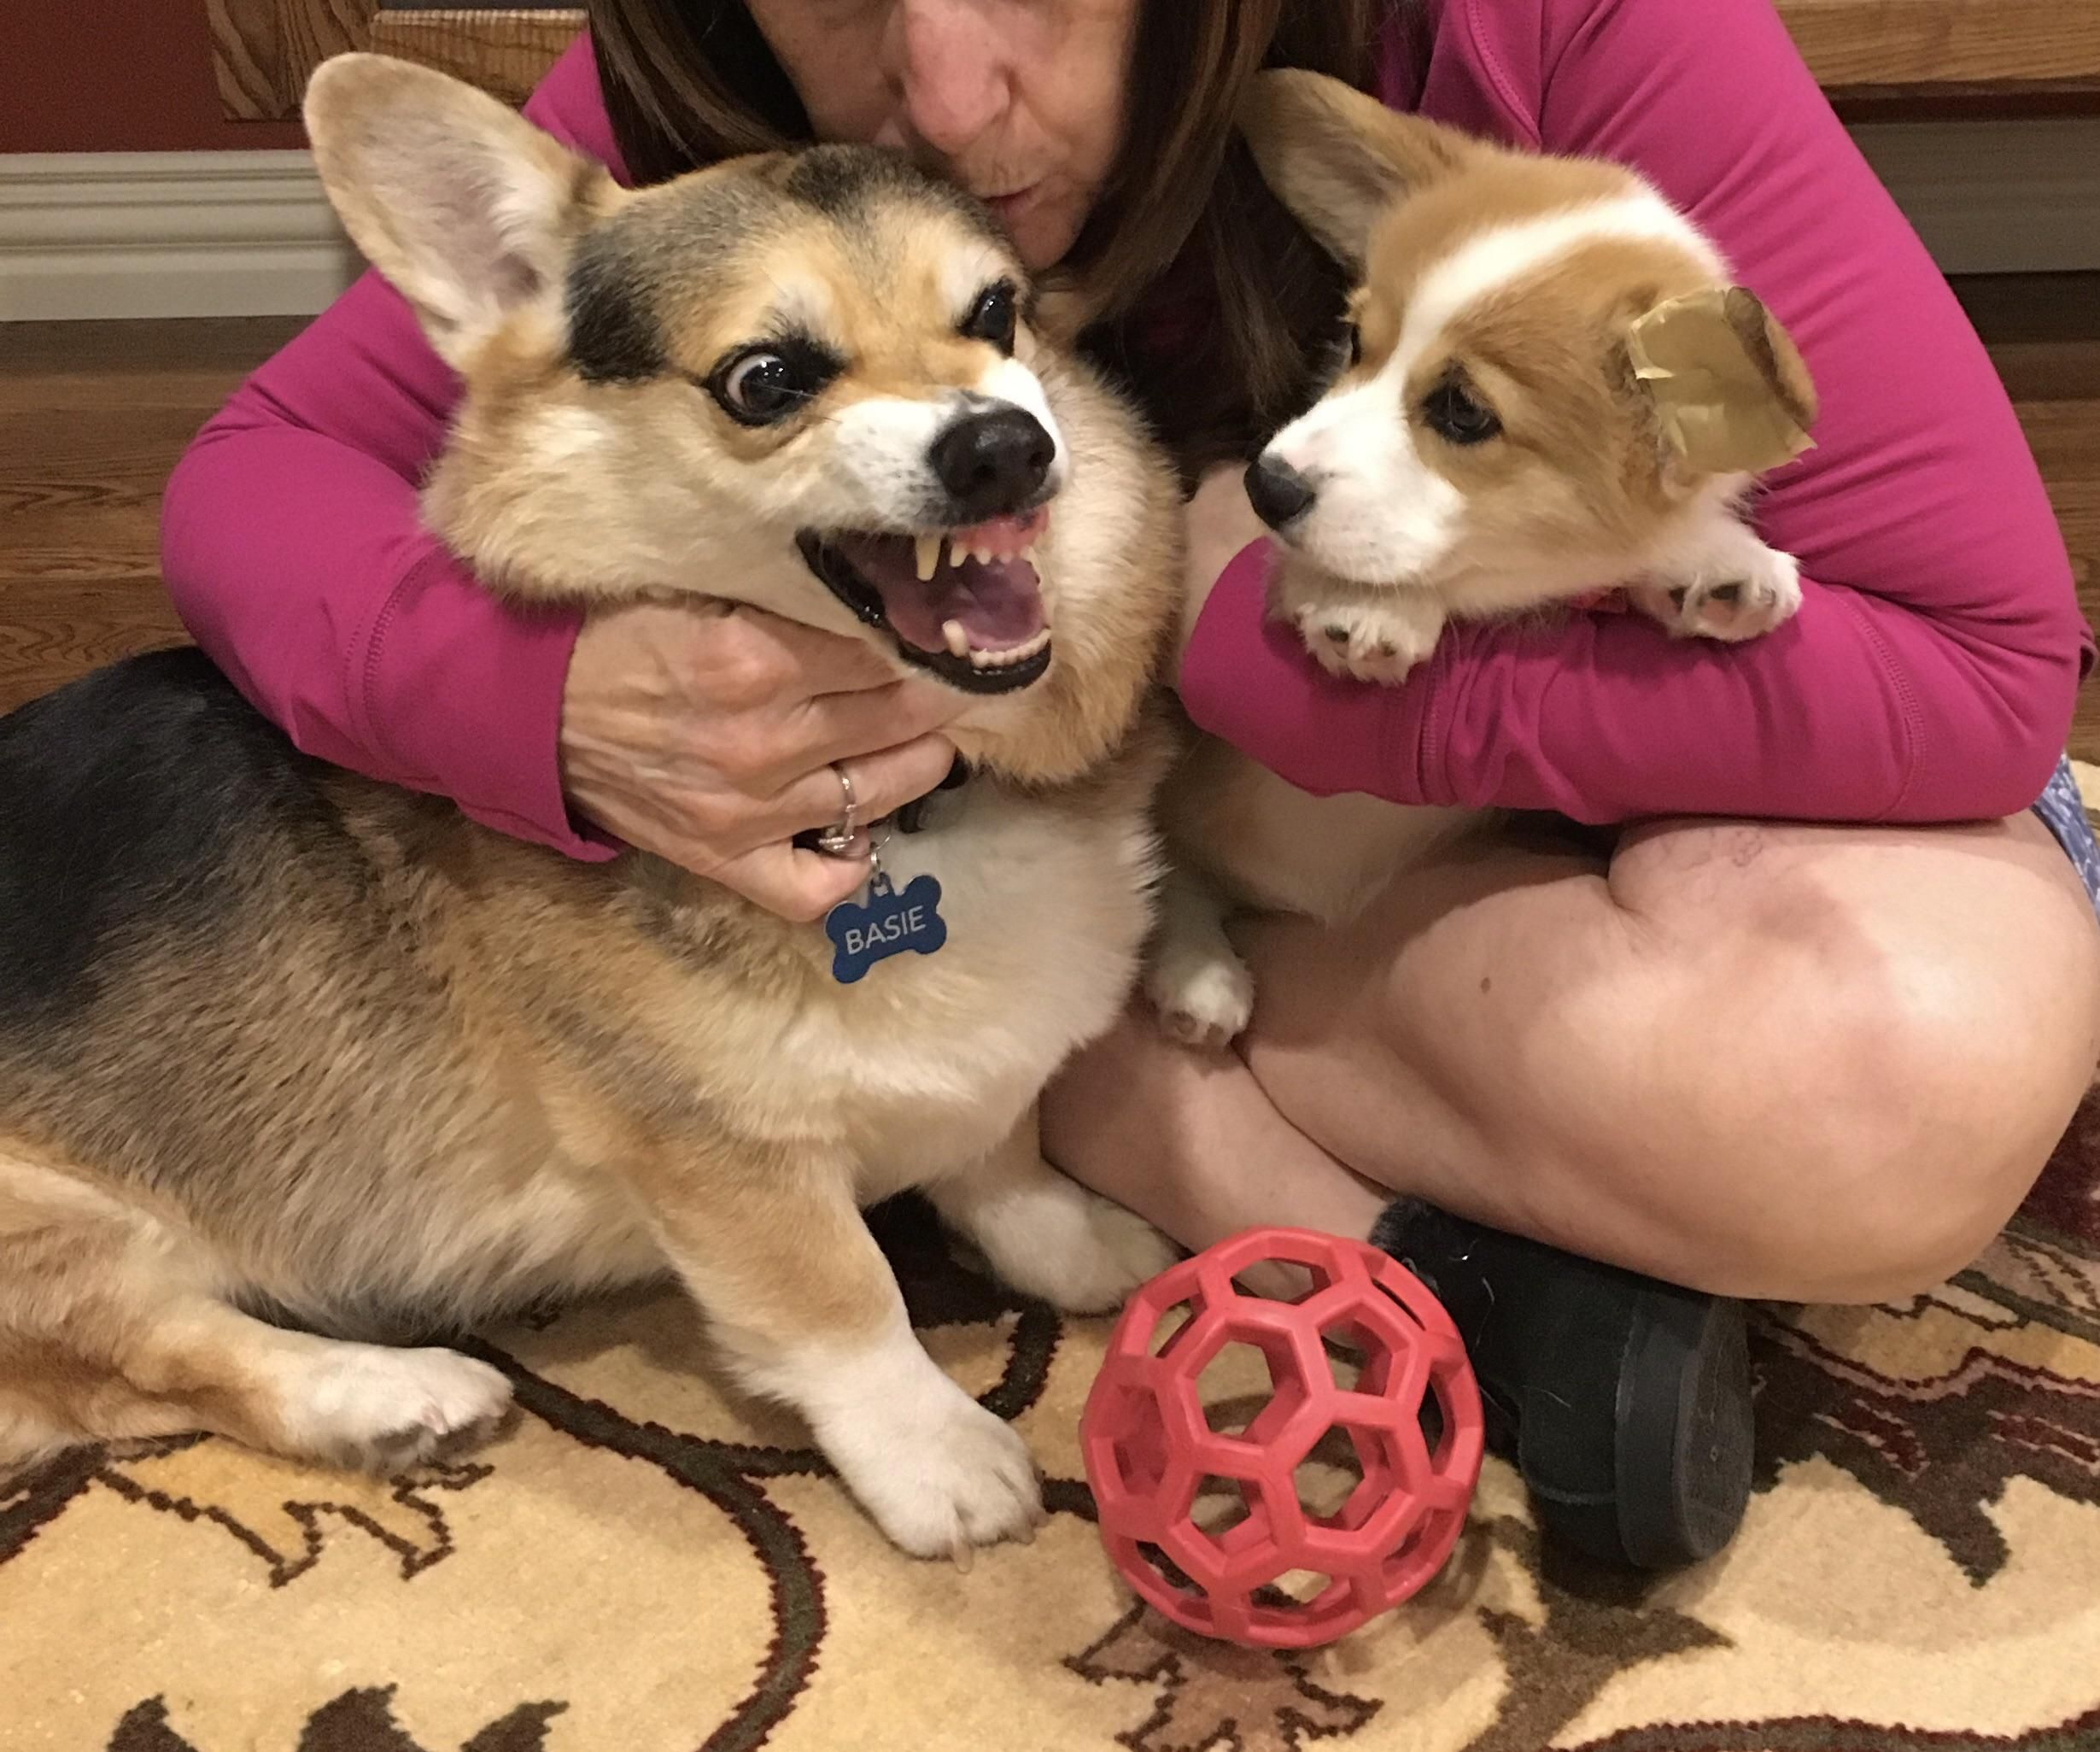 We adopted a new corgi puppy to love and befriend